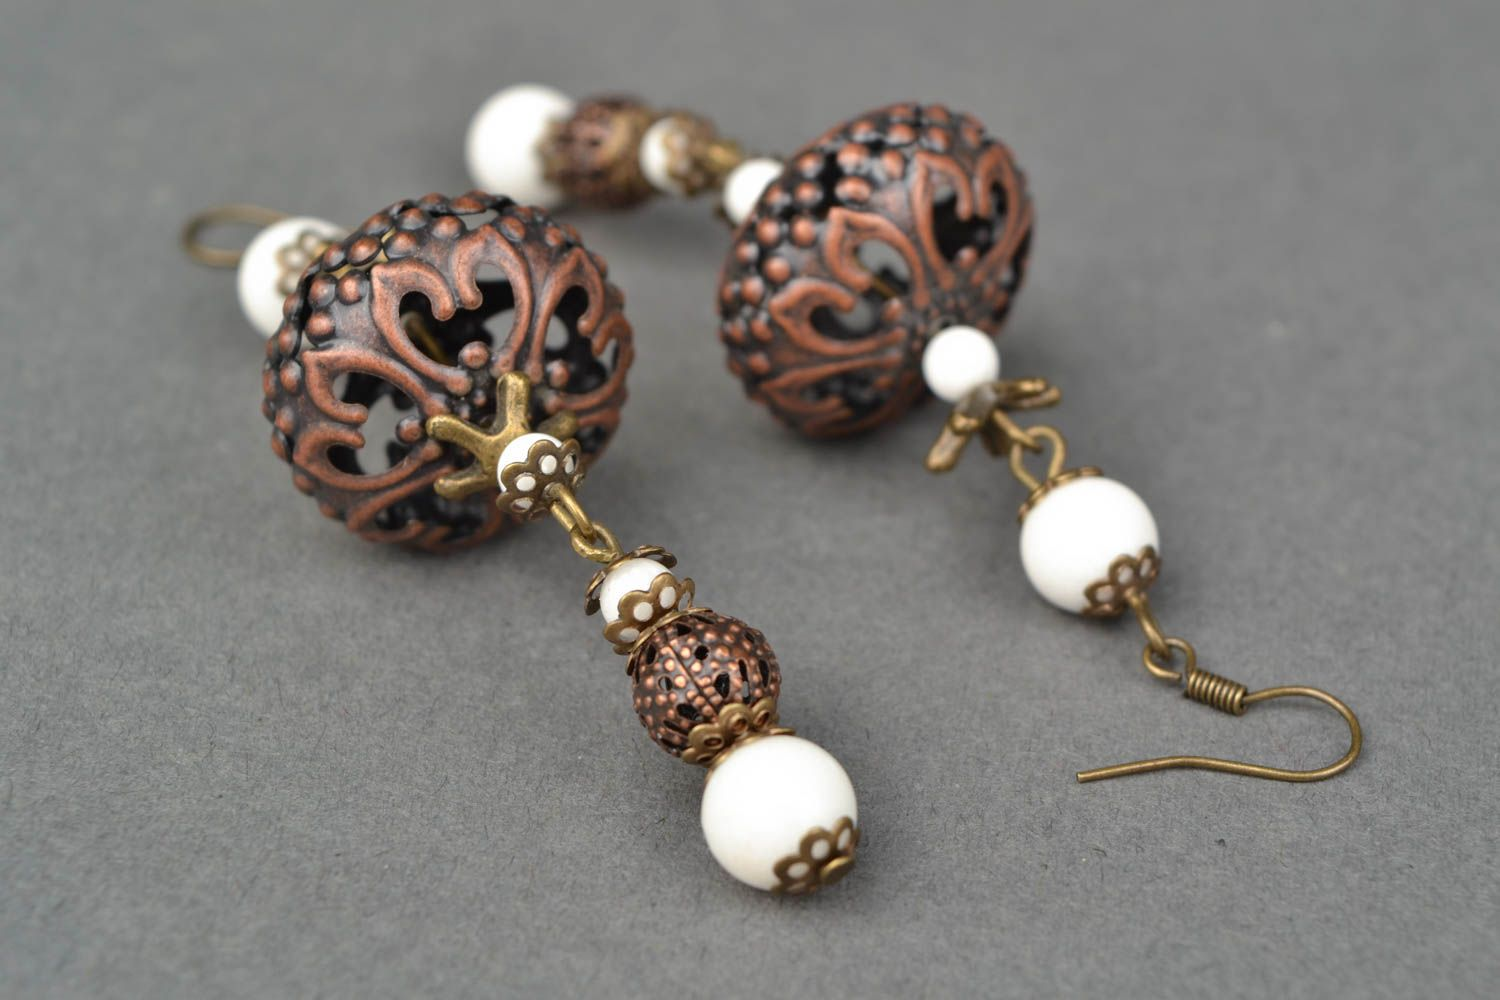 Metal earrings with ceramic beads photo 4